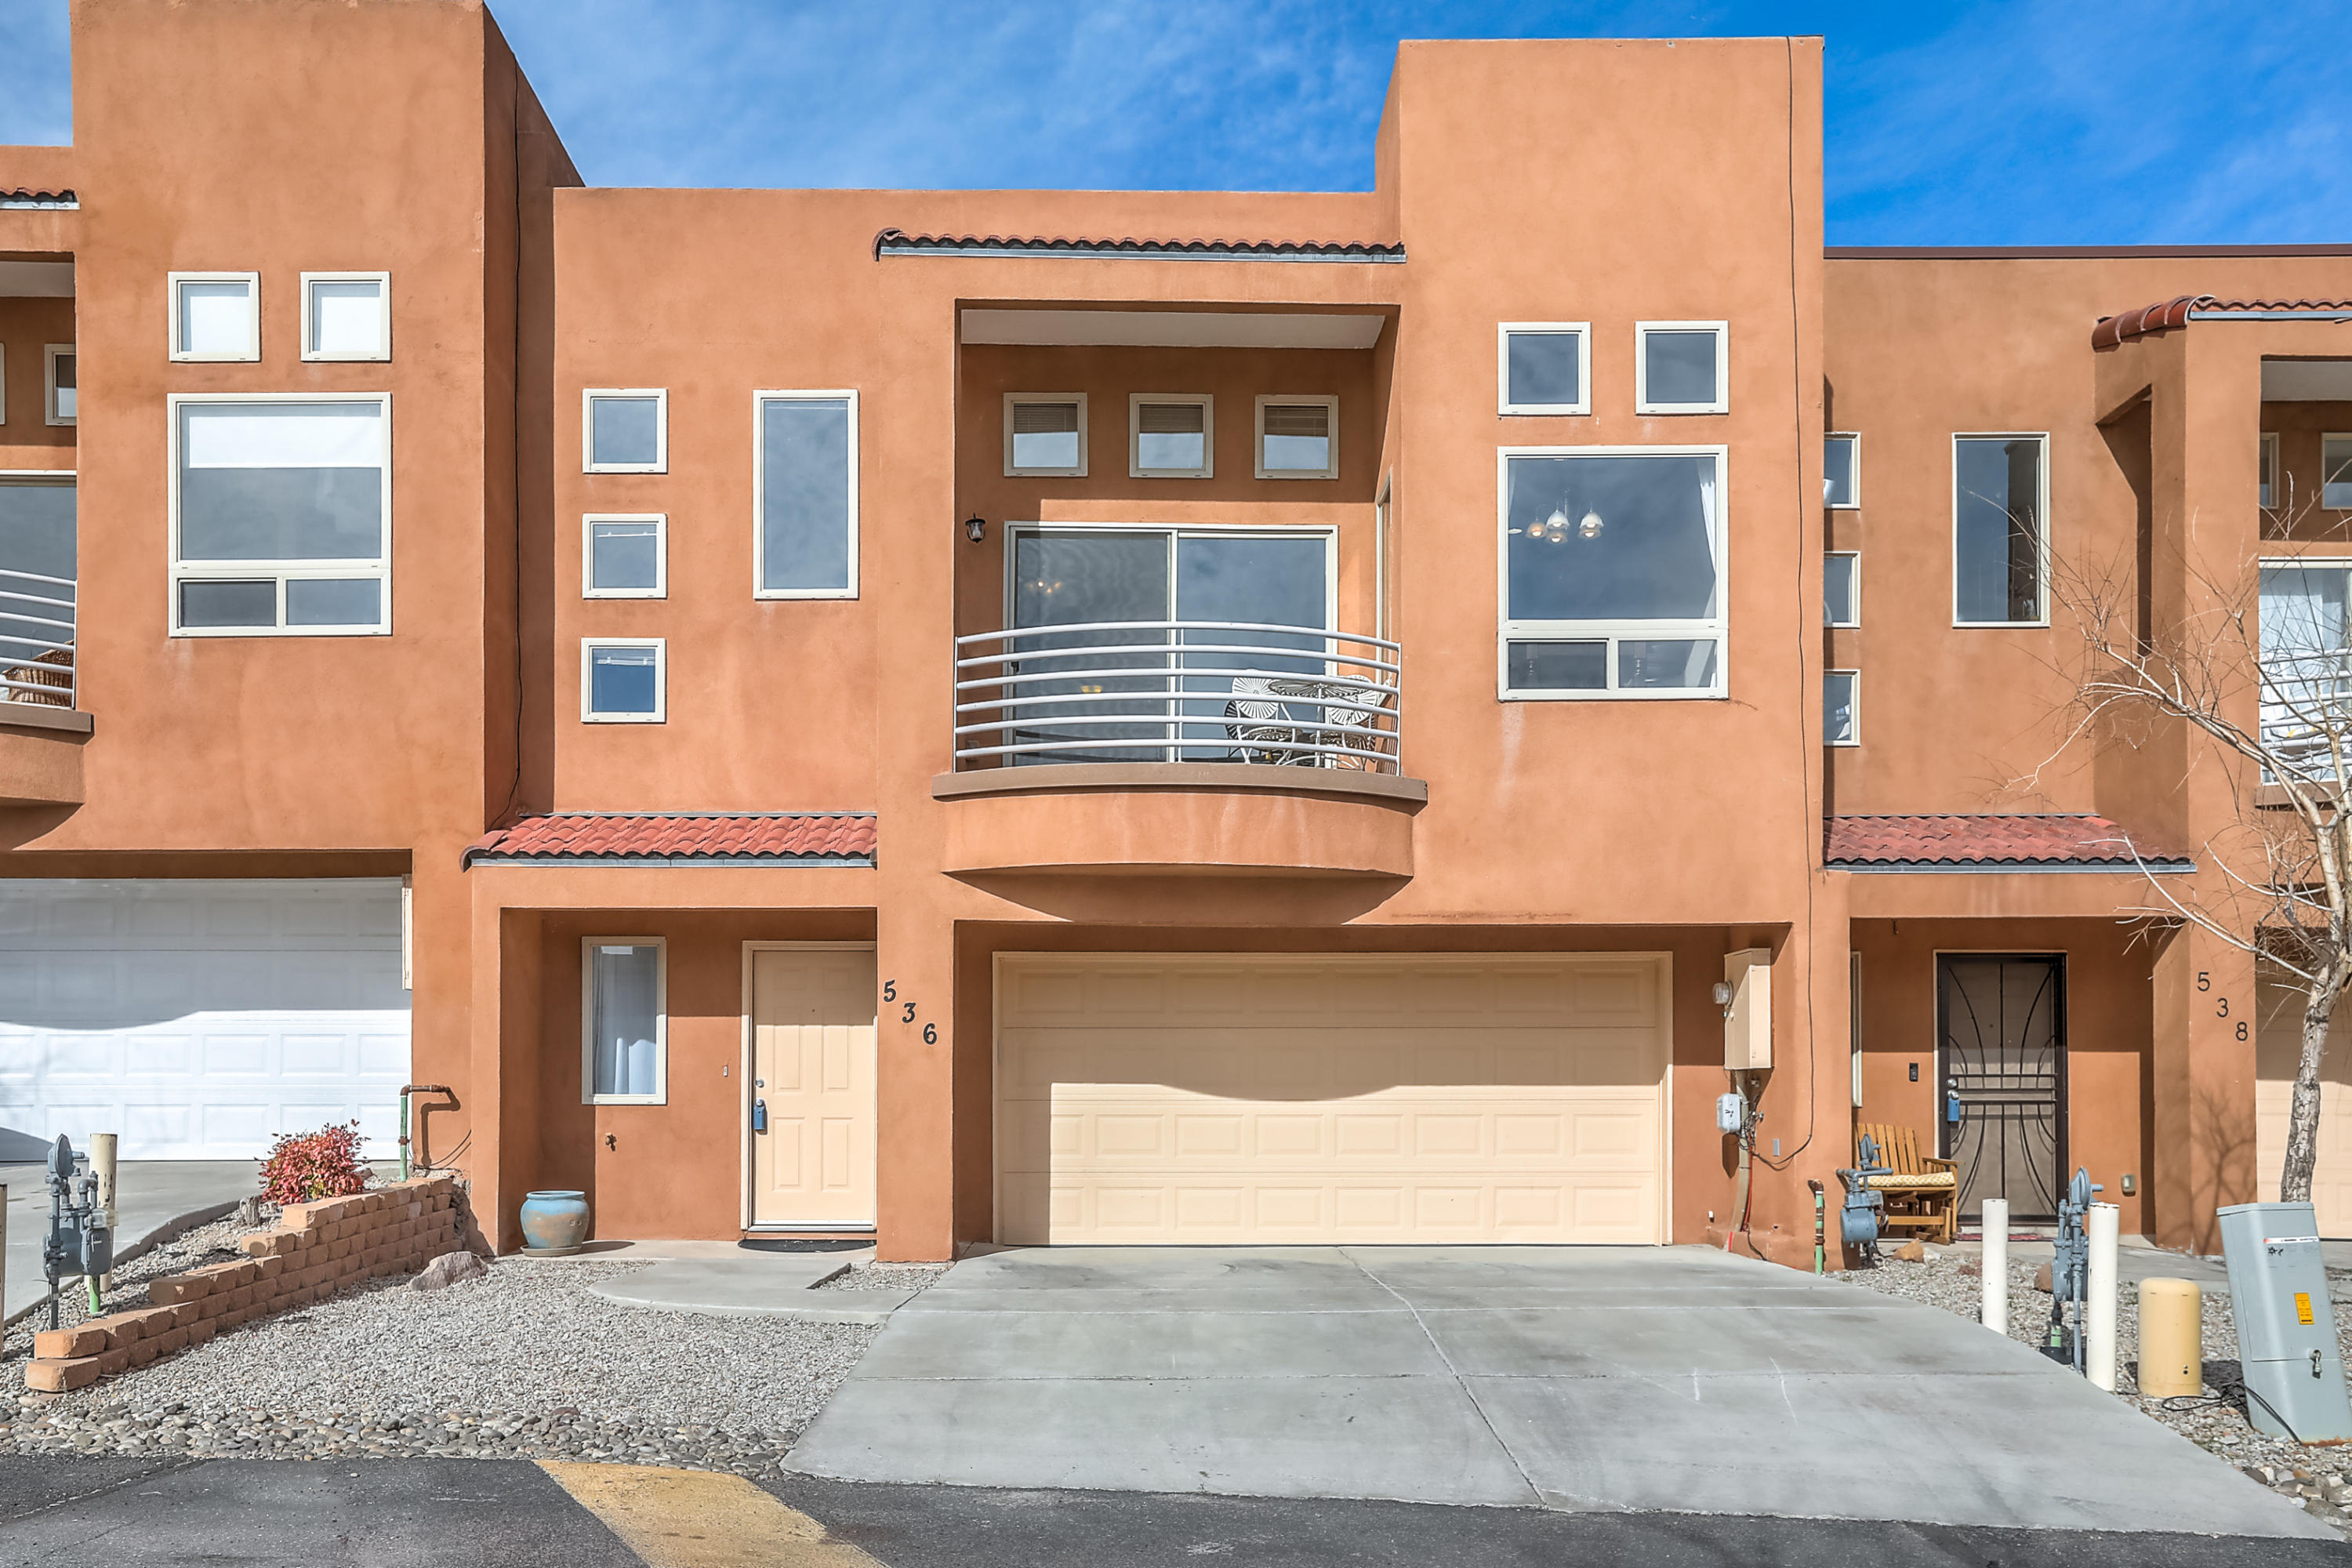 Beautiful Townhome in the Private Community of Pinon Creek!  Amazing house with wonderful views, granite countertops throughout, bamboo flooring and open floor plan.   Backyard patio for grilling and a front balcony to enjoy the views. Remodeled Master bathroom and a walk-in closet.